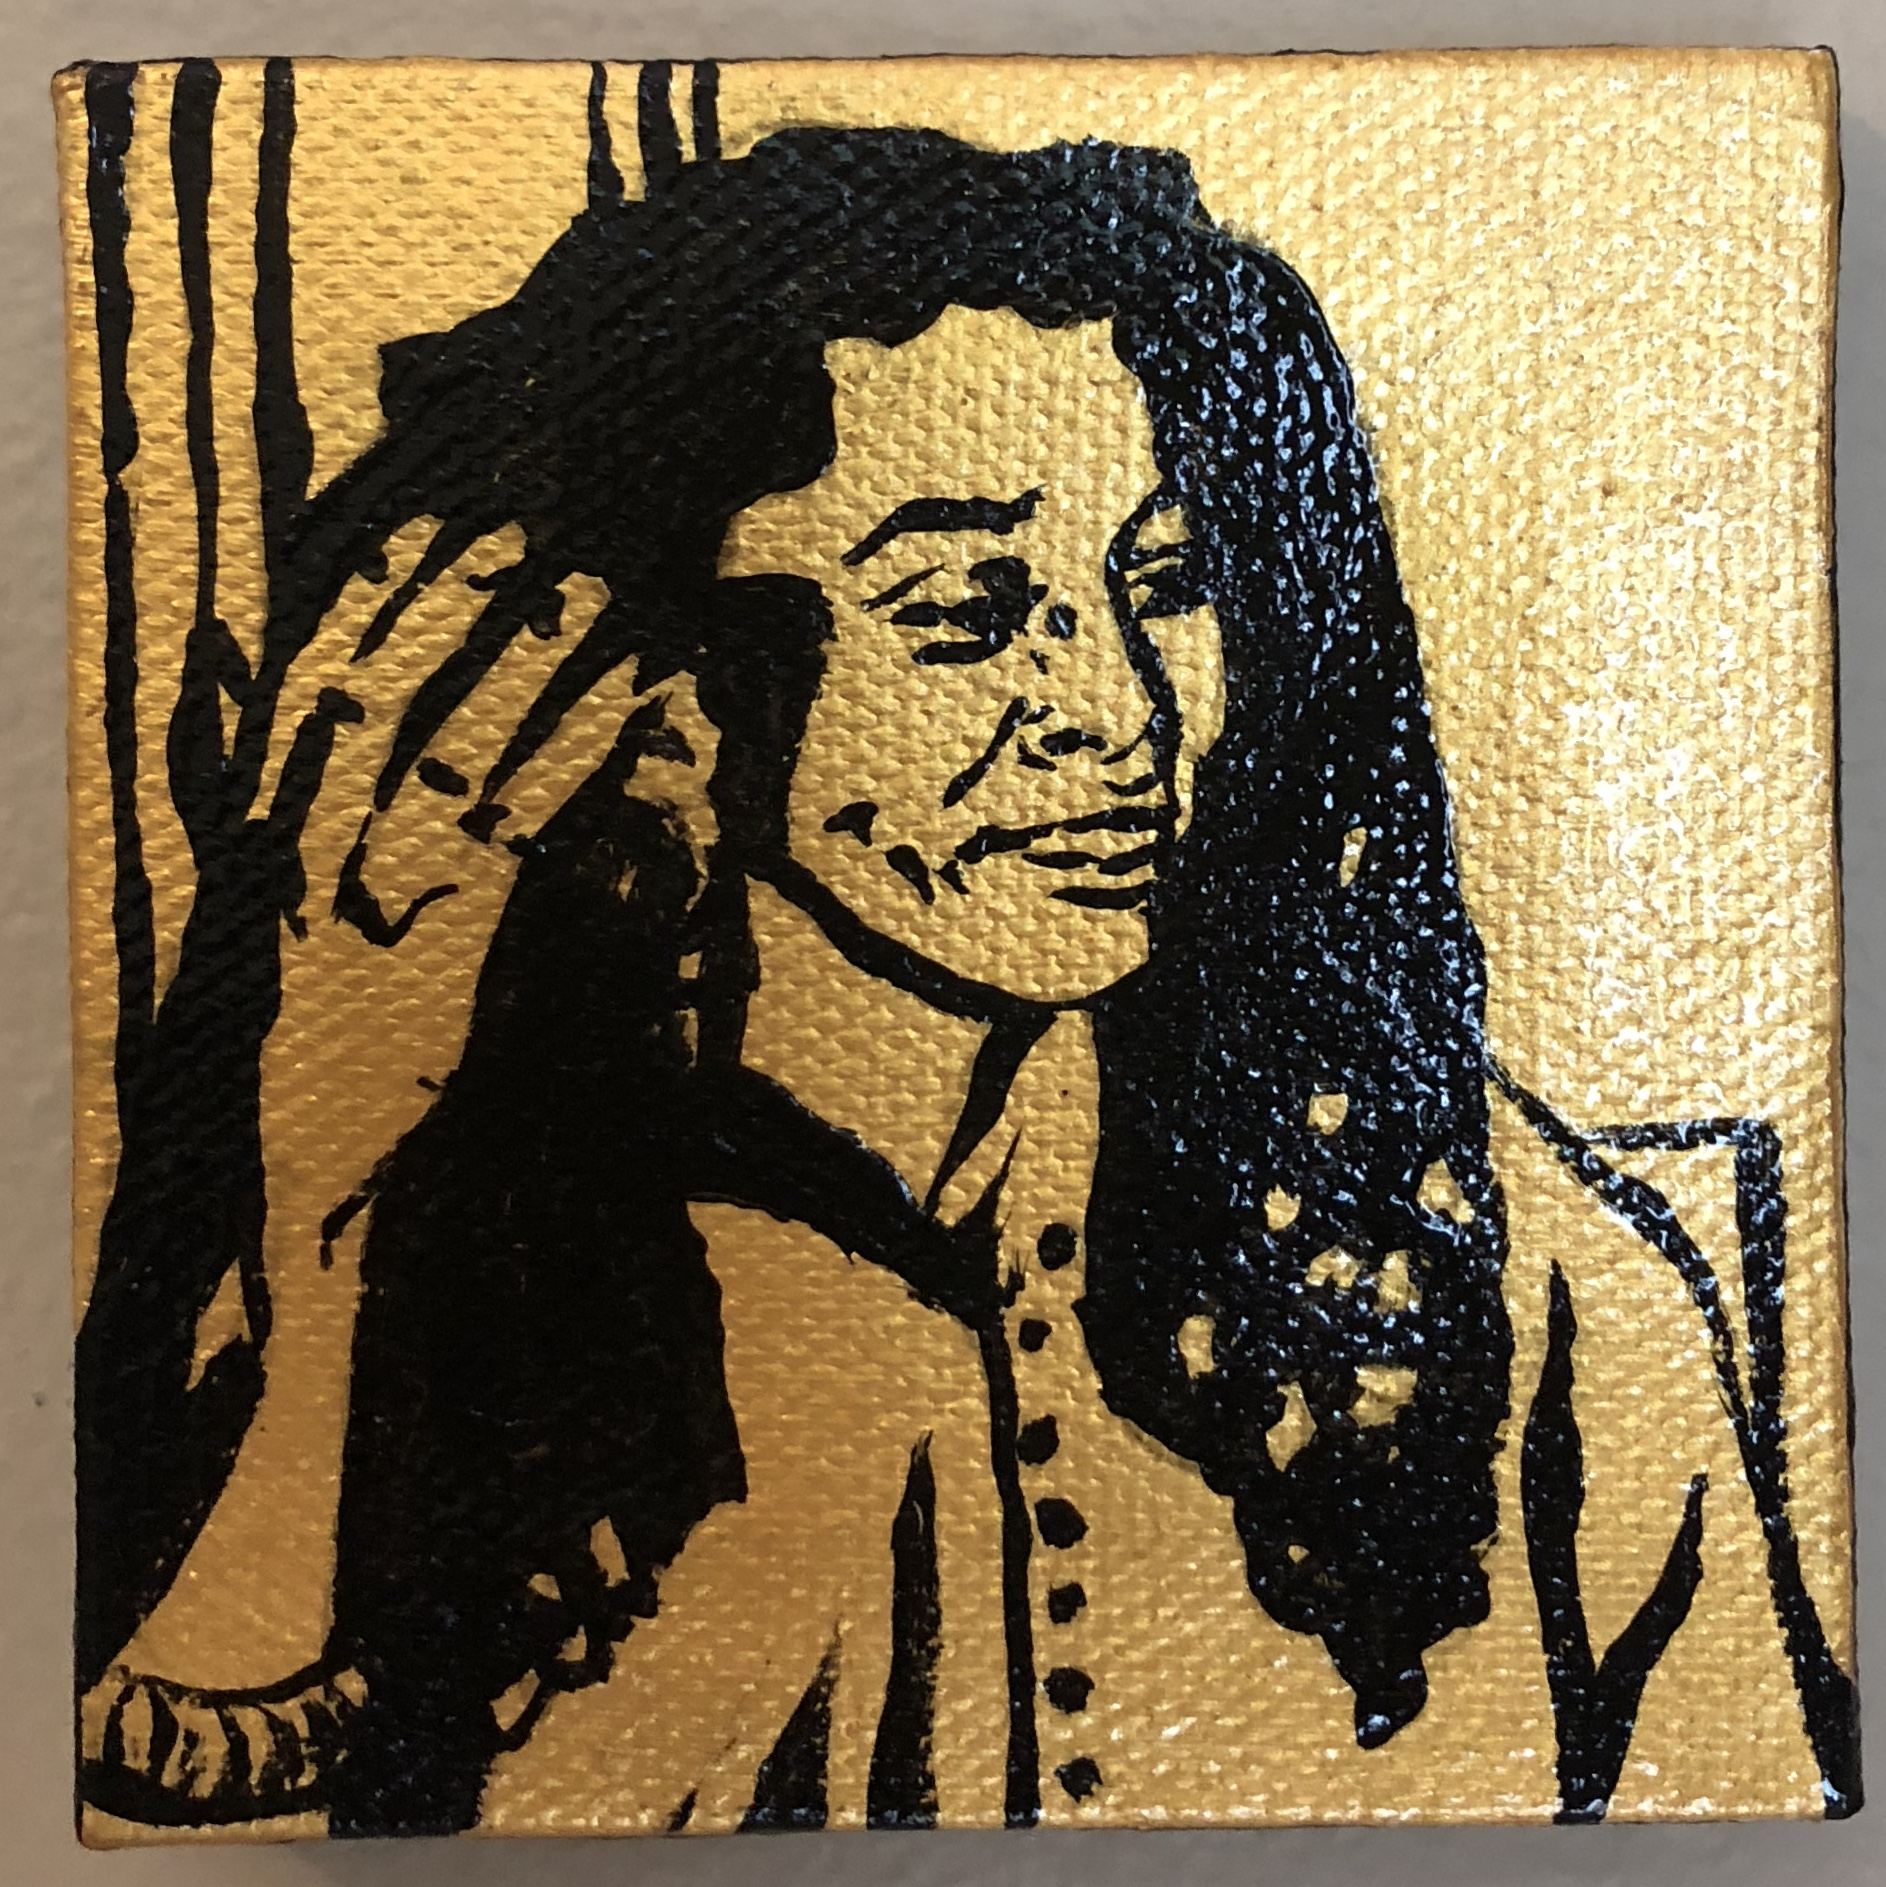 The Black & Gold Miniature Portrait Series: Assata Shakur